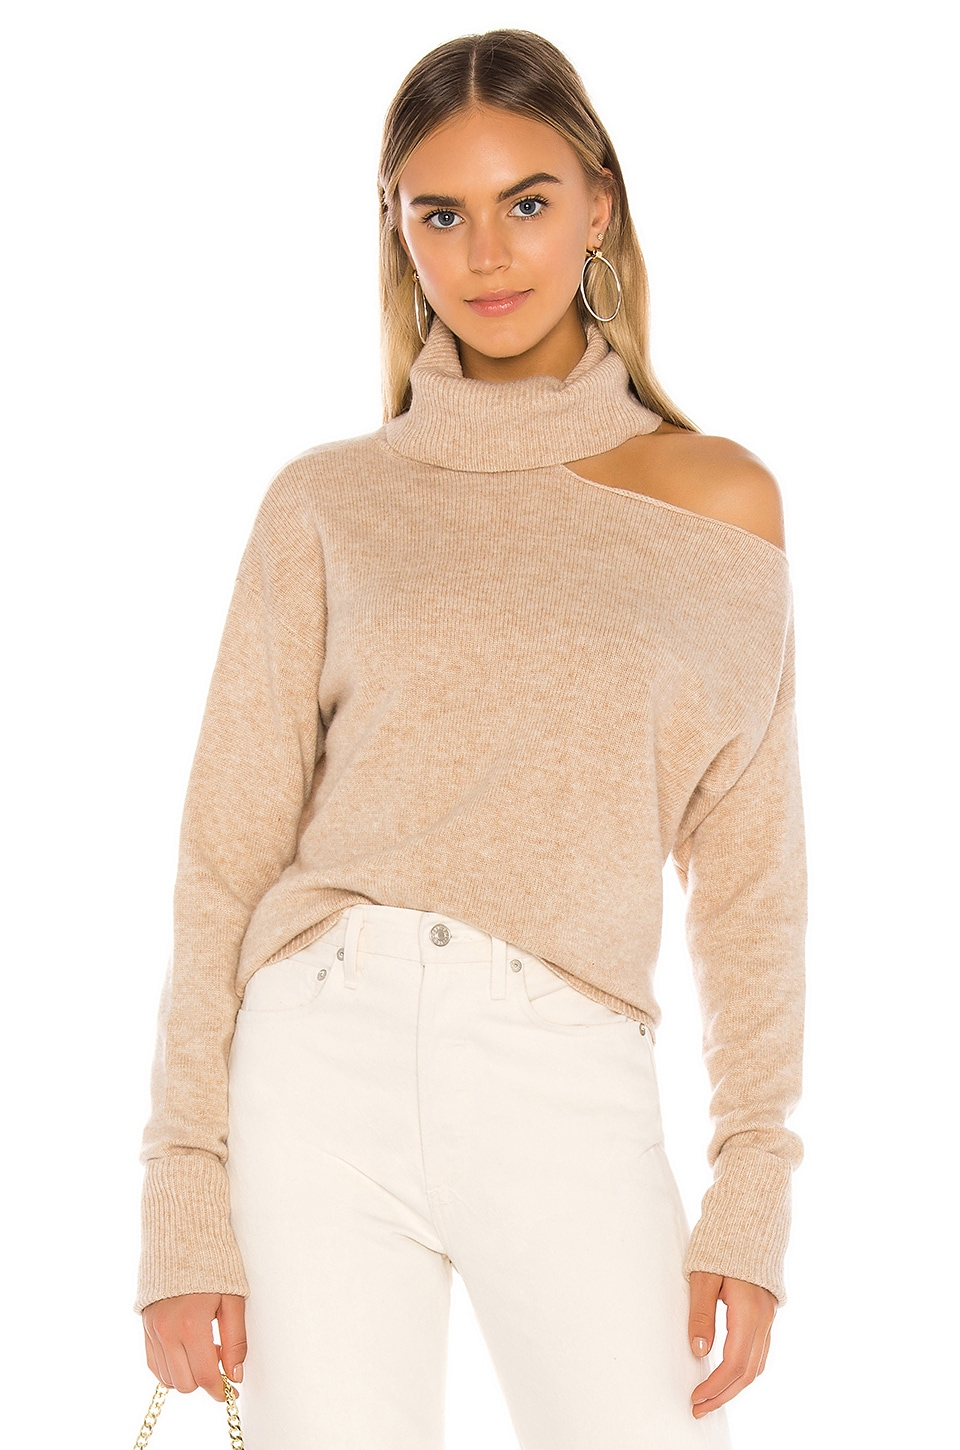 PAIGE Raundi Sweater in Camel